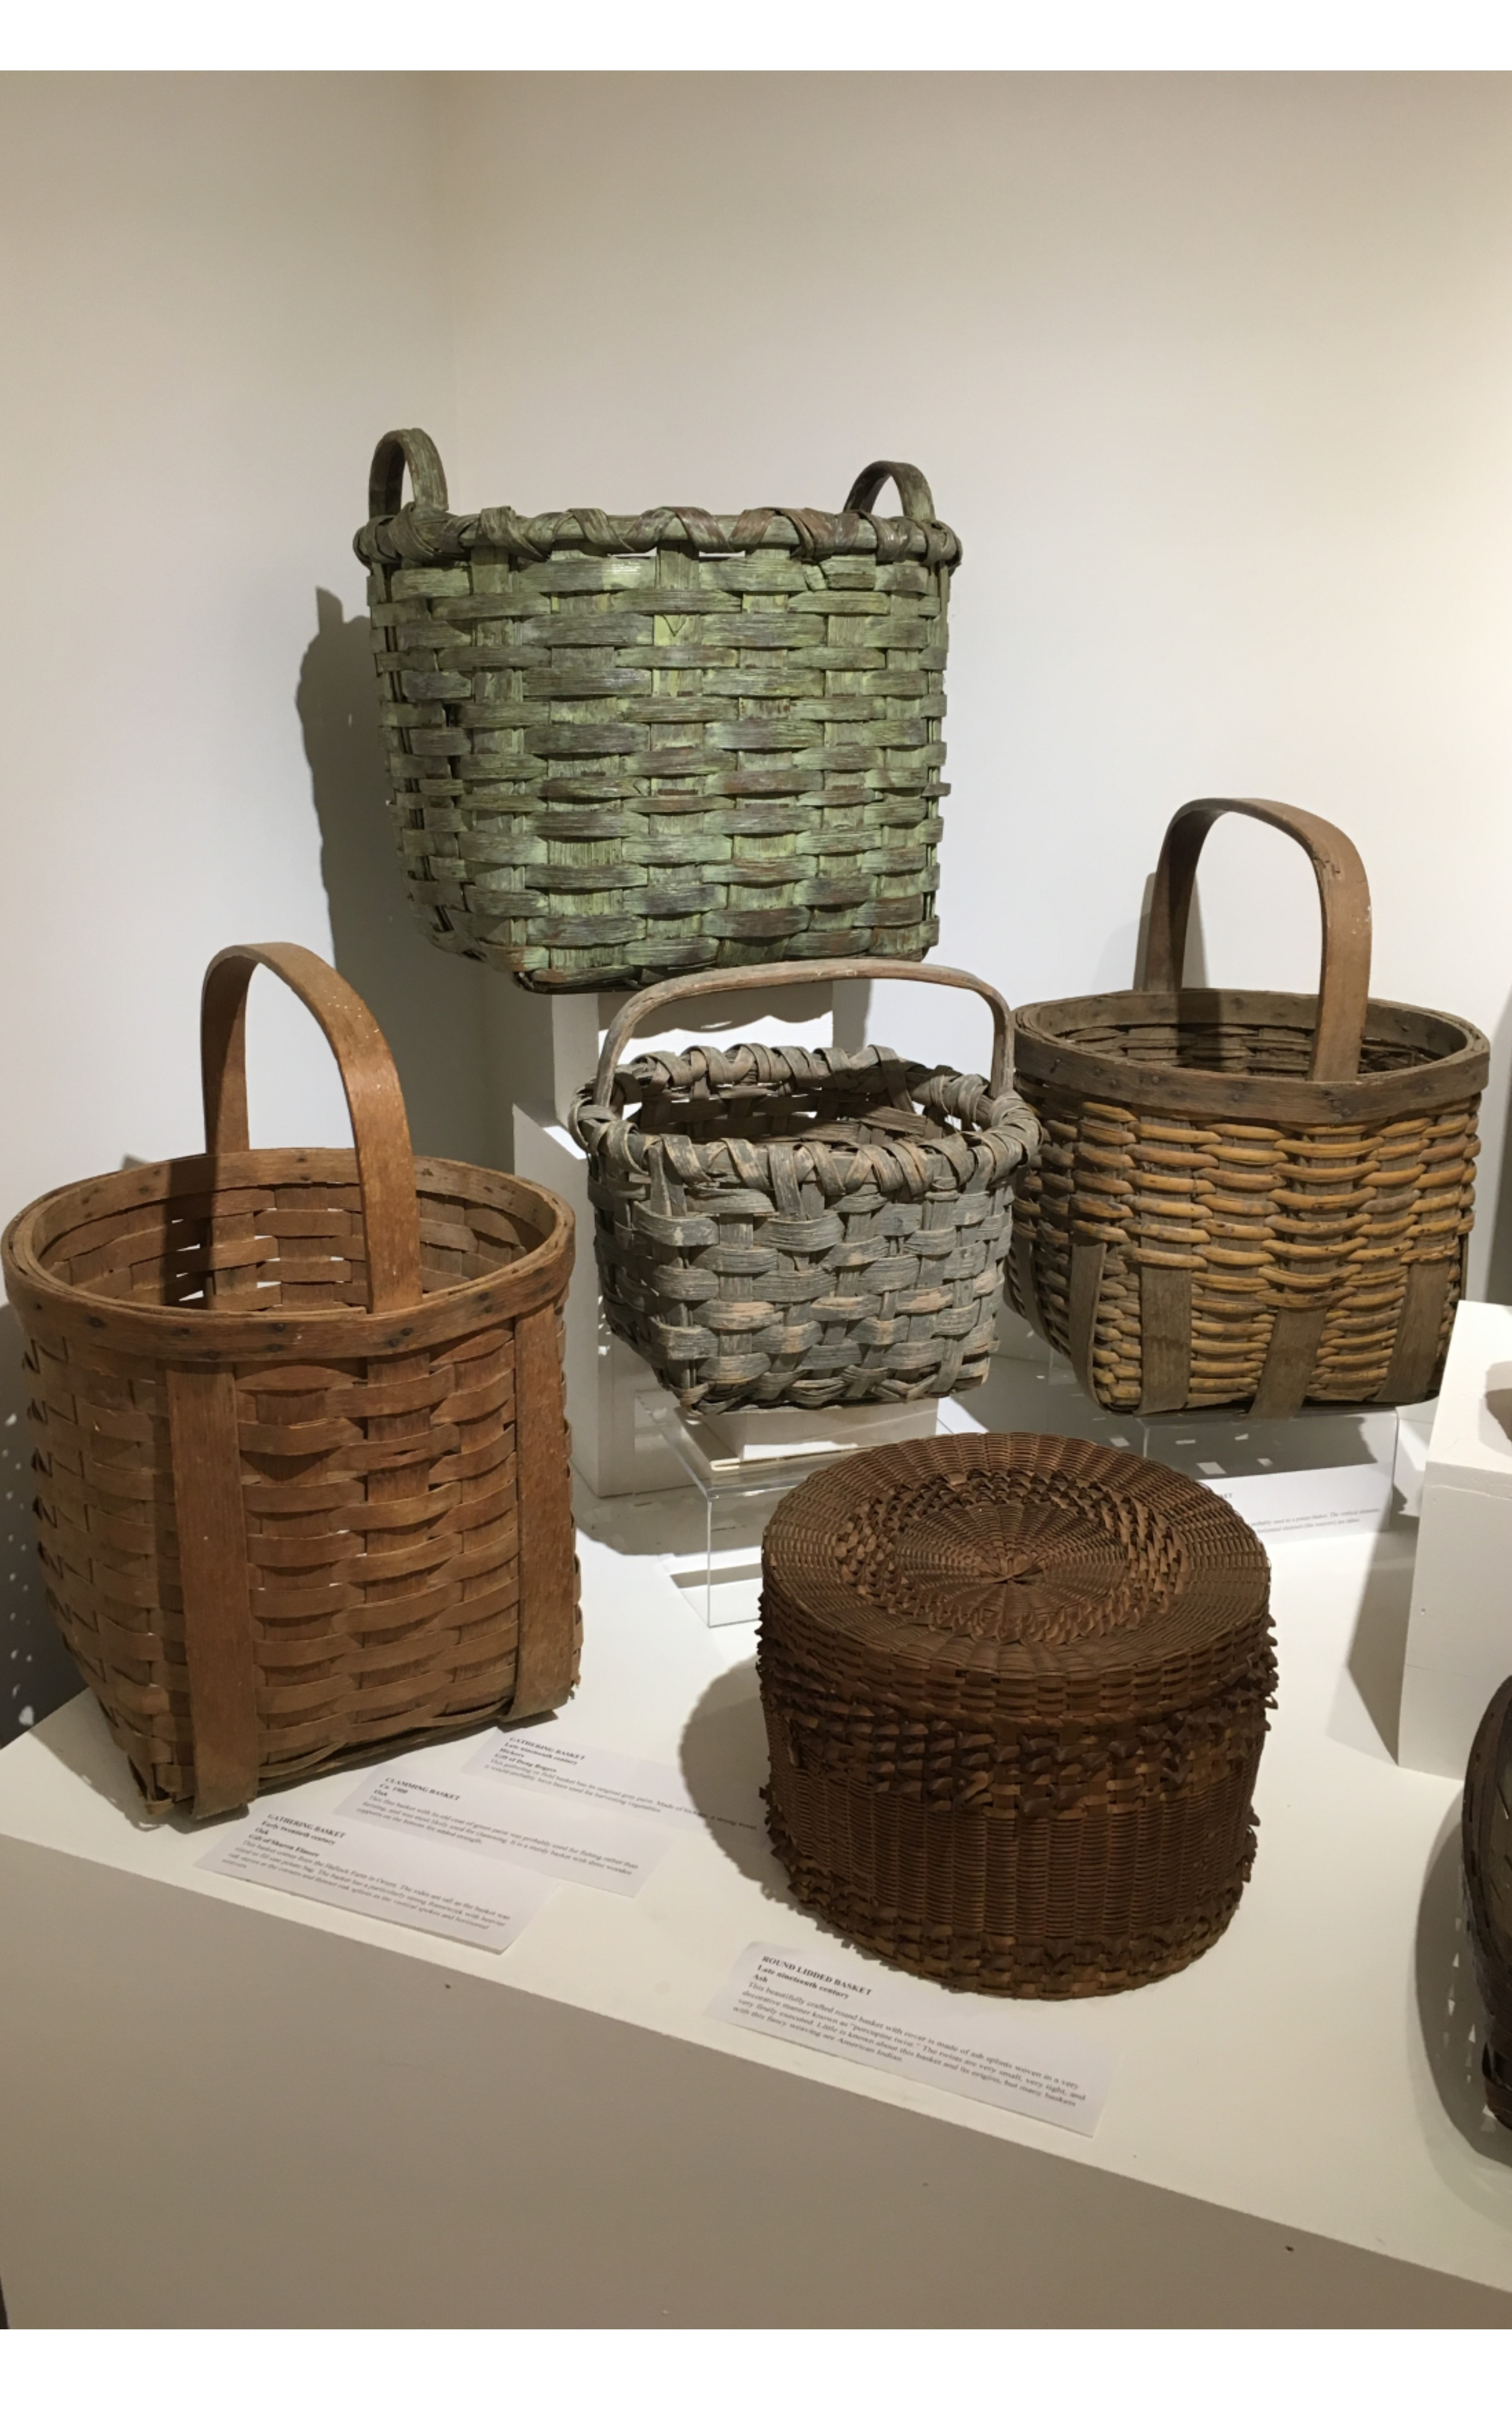 """<h3>GATHERING BASKET</em></h3> <br> <p><strong>Oak</strong></p> <p><strong>Early-twentieth century</strong></p> <p><strong>Gift of Sharon Elmore</strong></p> <br> <p>This basket comes from the Hallock Farm in Orient. The sides are tall as the basket was sized to fill one potato bag. The basket has a particularly strong framework with heavier oak staves at the corners and thinner oak splints as the vertical spokes and horizontal weavers.</p> <br> <br> <hr> <br> <br> <h3>CLAMMING BASKET</em></h3> <br> <p><strong>Oak</strong></p> <p><strong>Ca. 1900</strong></p> <br> <p>This fine basket with its old coat of green paint was probably used for fishing rather than farming, and was most likely used for clamming. It is a sturdy basket with three wooden supports on the bottom for added strength.</p> <br> <br> <hr> <br> <br> <h3>GATHERING BASKET</h3> <br> <p><strong>Hickory</strong></p> <p><strong>Late-nineteenth century</strong></p> <p><strong>Gift of Doug Rogers</strong></p> <br> <p>This gathering or field basket has its original gray paint. Made of hickory, a strong wood, it would probably have been used for harvesting vegetables.</p> <br> <br> <hr> <br> <br> <h3>ROUND LIDDED BASKET</h3> <br> <p><strong>Ash</strong></p> <p><strong>Late-nineteenth century</strong></p> <p><strong>Gift of George Terry</strong></p> <br> <p>This beautifully crafted round basket with cover is made of ash splints woven in a very decorative manner known as """"porcupine twist."""" The twists are very small, very tight, and very finely executed. Little is known about this basket and its origins, but many baskets with this fancy weaving are American Indian.</p> <br> <br> <hr> <br> <br> <h3>GATHERING BASKET</h3> <br> <p><strong>Oak and Rattan</strong></p> <p><strong>Ca. 1900</strong></p> <p><strong>Gift of Irma Hupfel</strong></p> <br> <p>This gathering or field basket was probably used as a potato basket. The vertical elements (the spokes) are made of oak and the horizontal elements (the weavers) are ratta"""